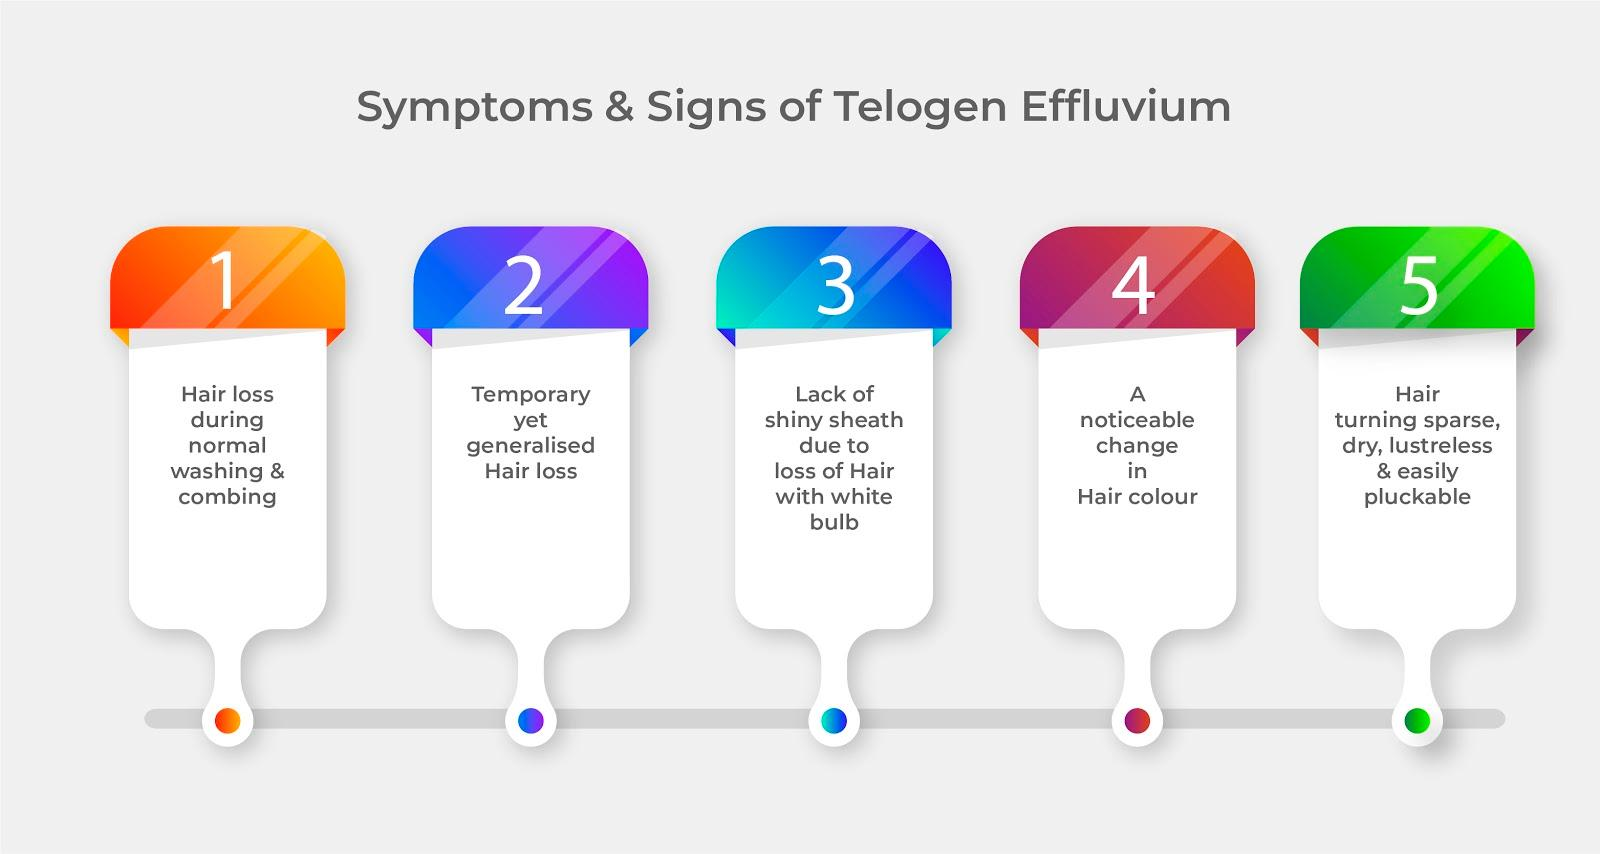 Signs of Telogen